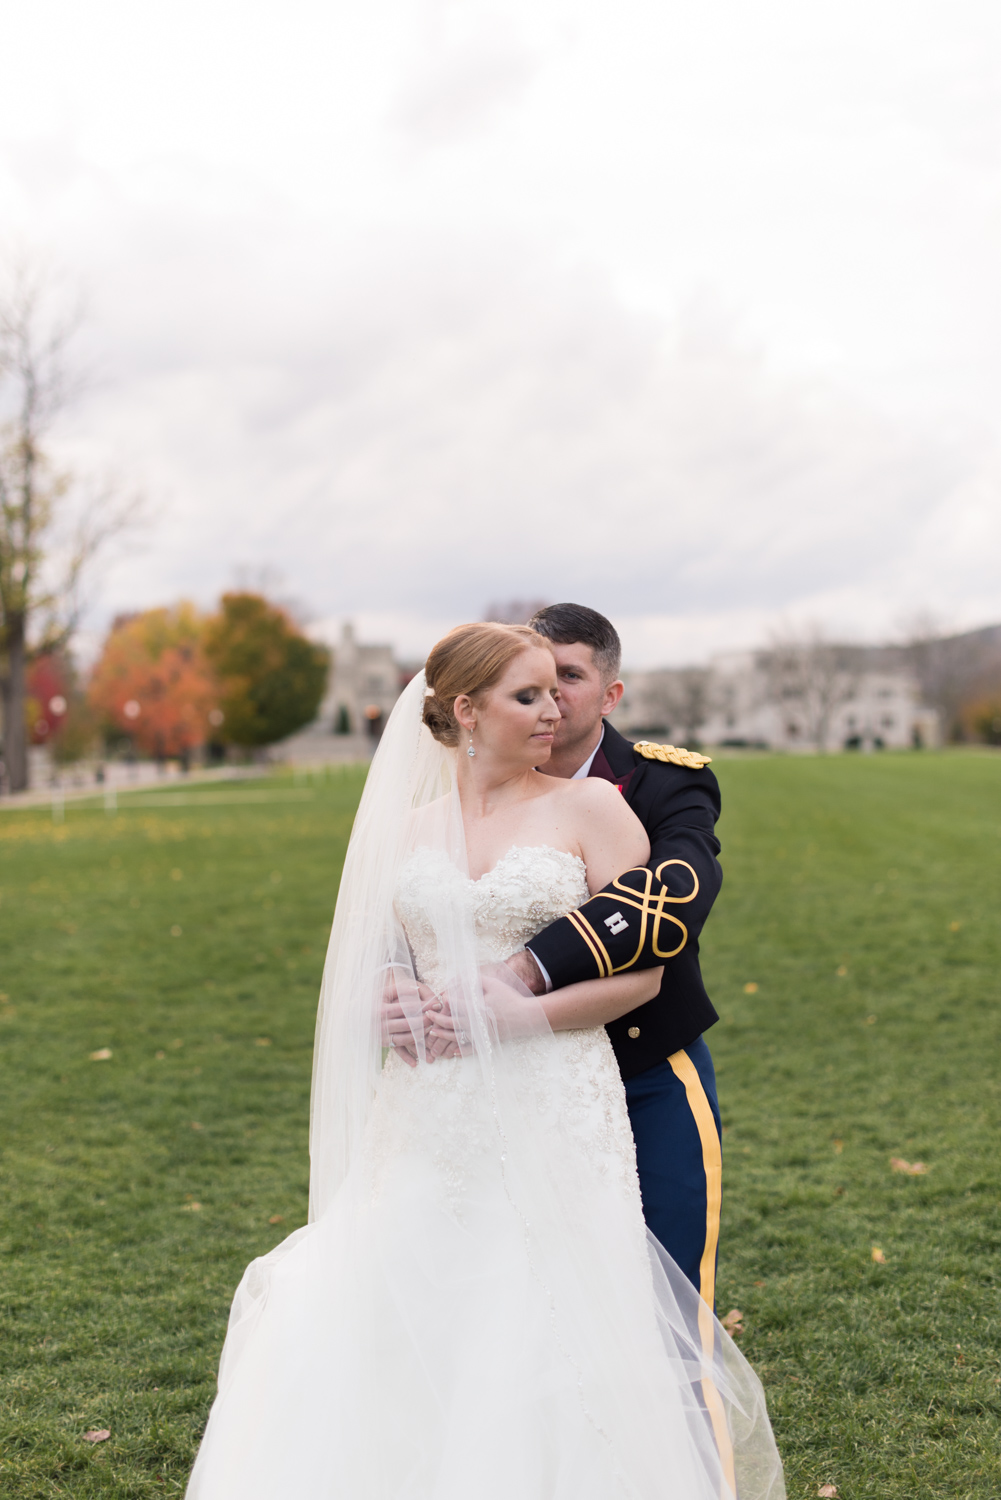 Purple Fall Wedding at VMI Lexington VA Destination Wedding-205.JPG